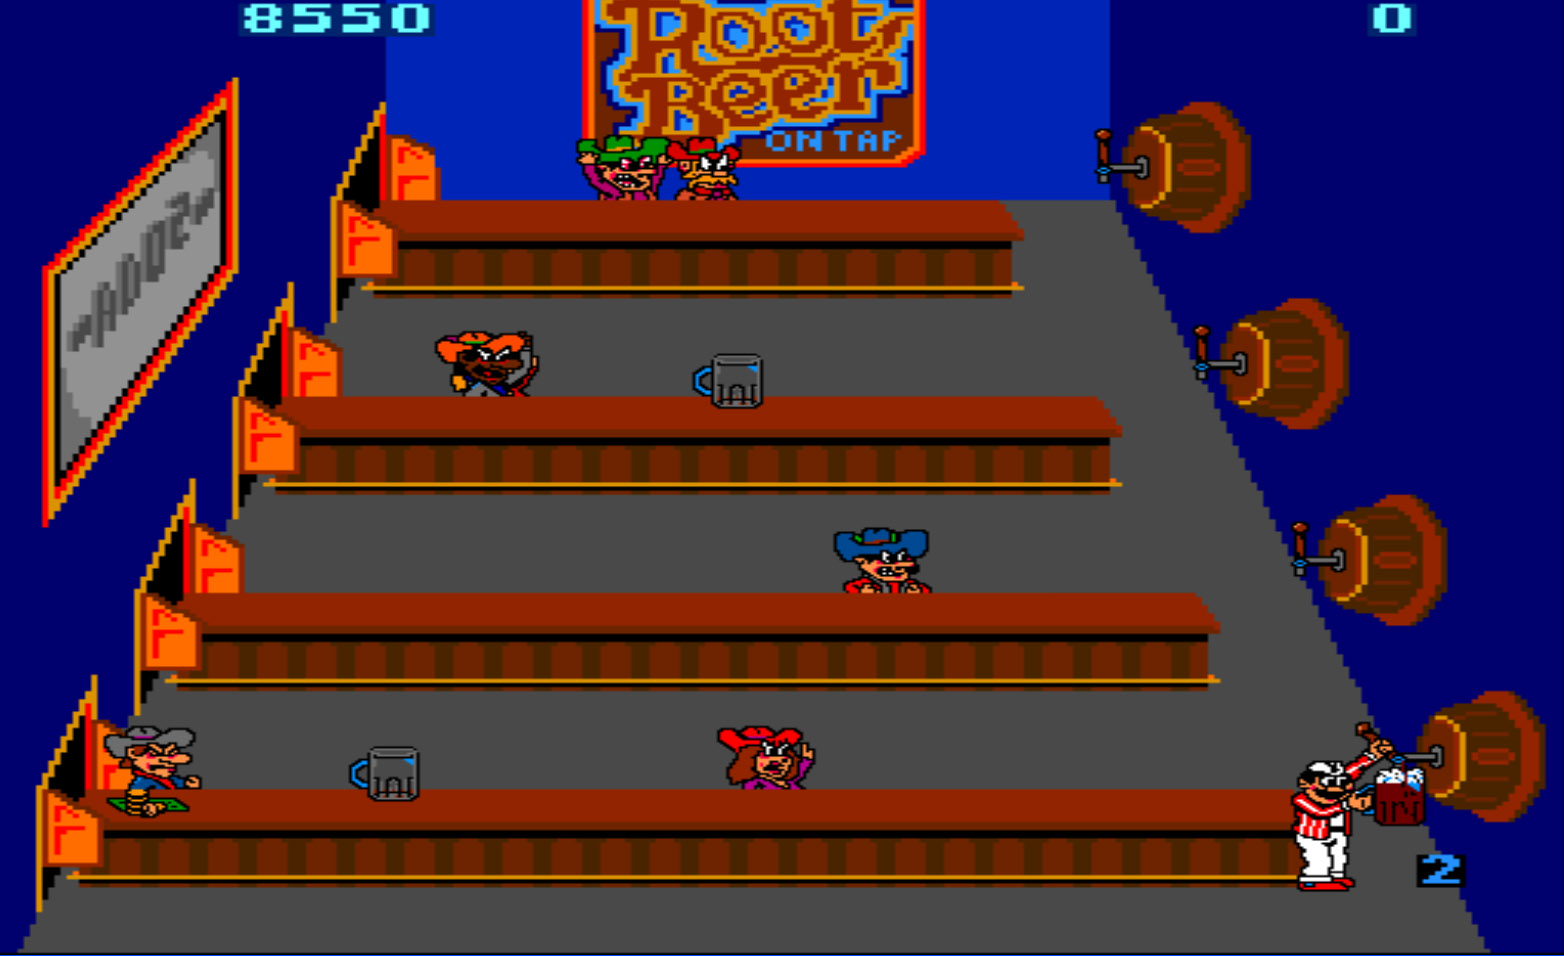 Tapper (Bally Midway, 1983)